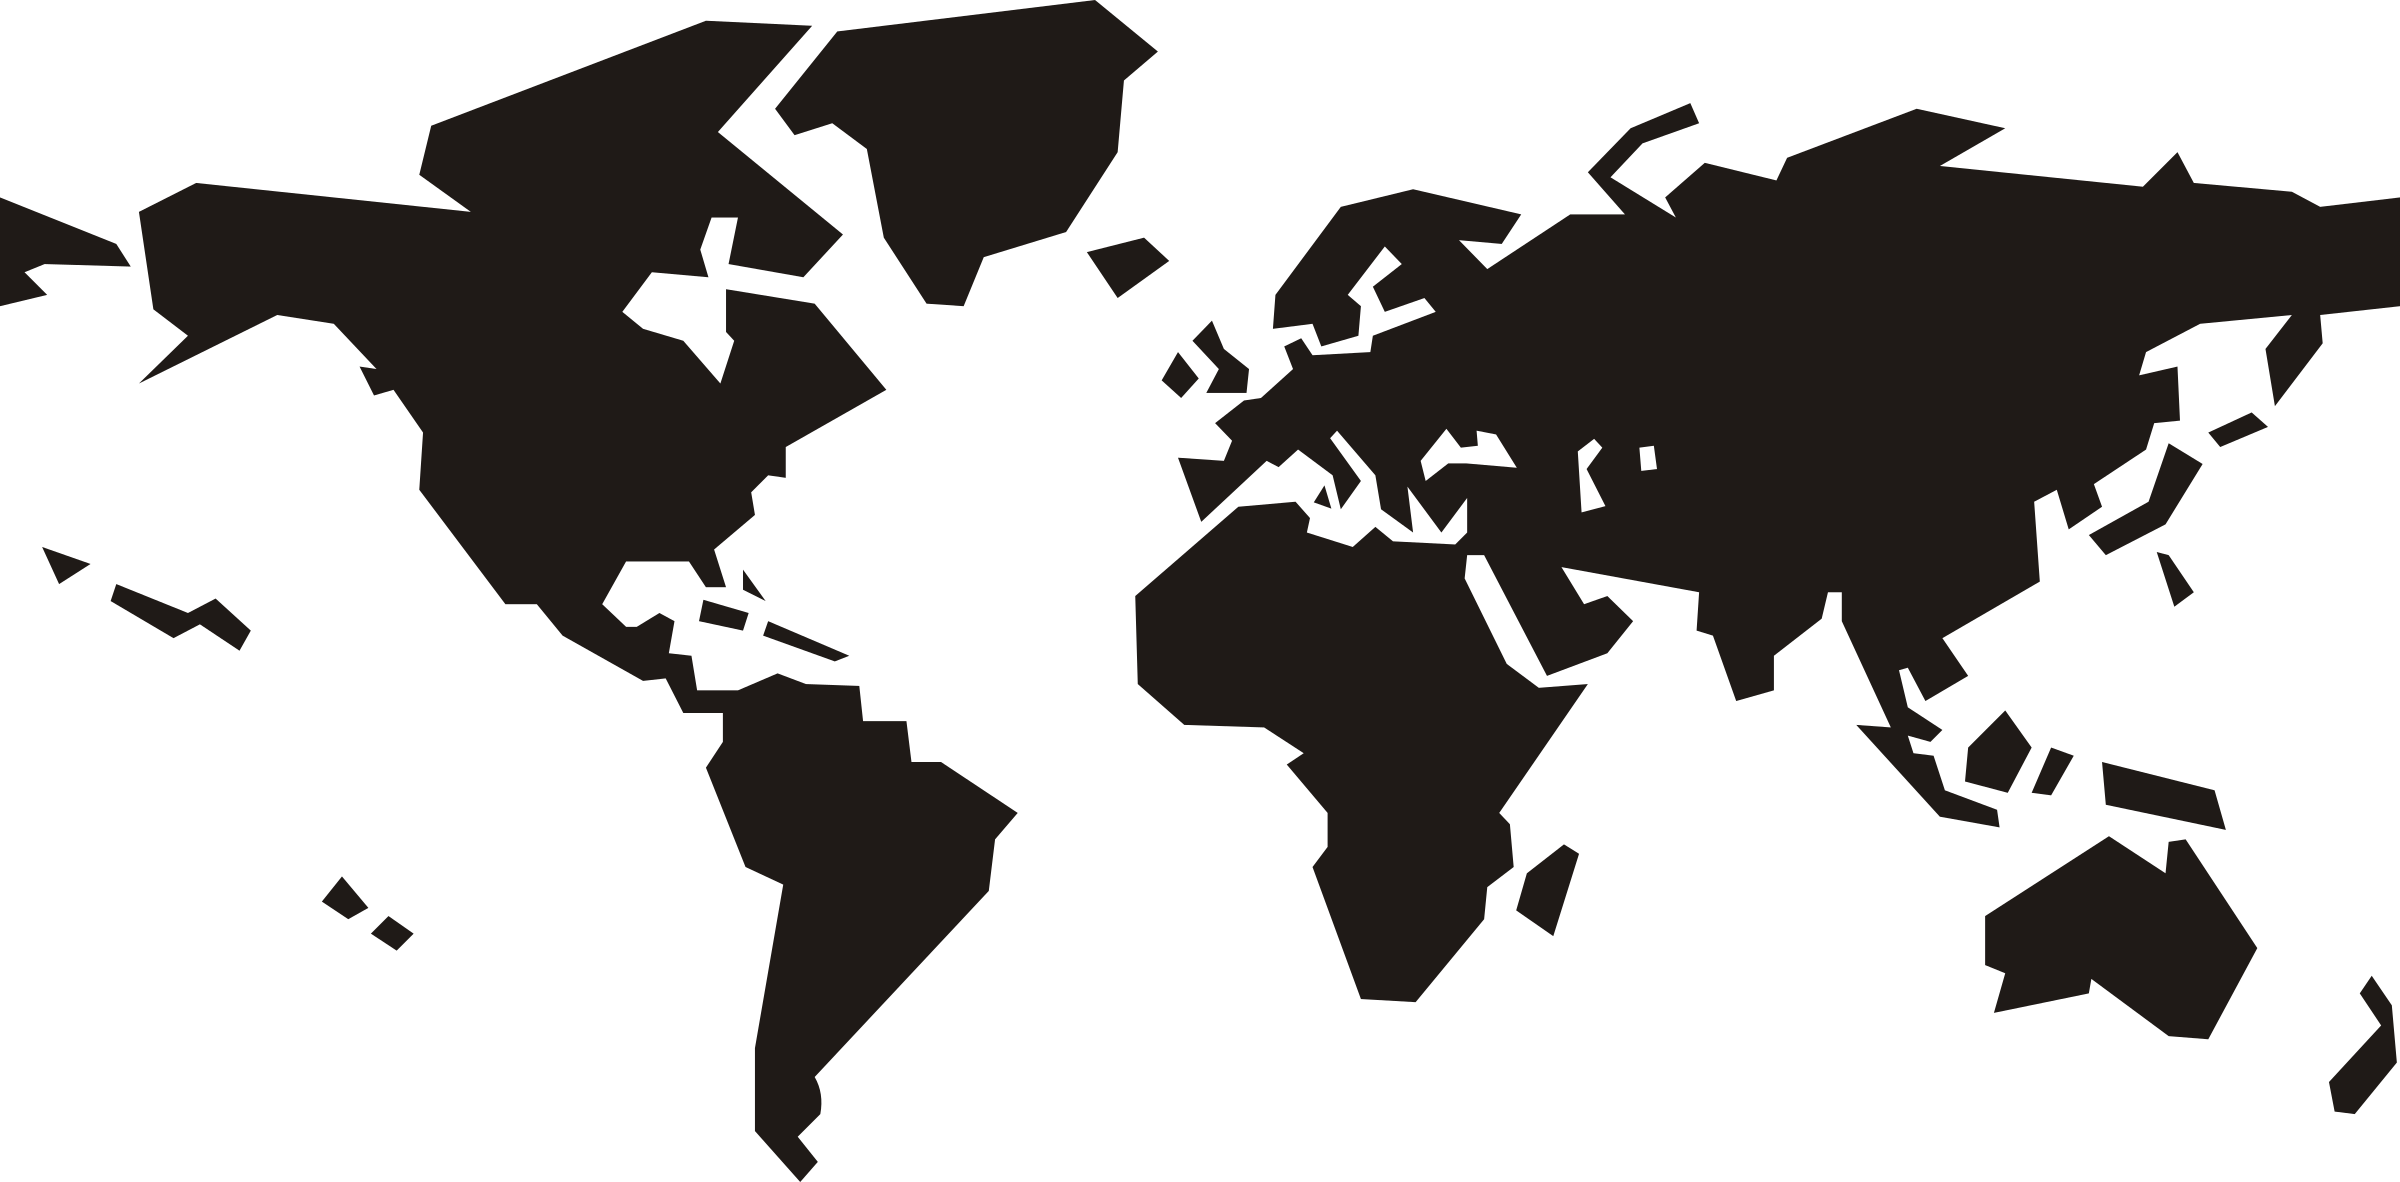 World map black and white png. Clipart big image